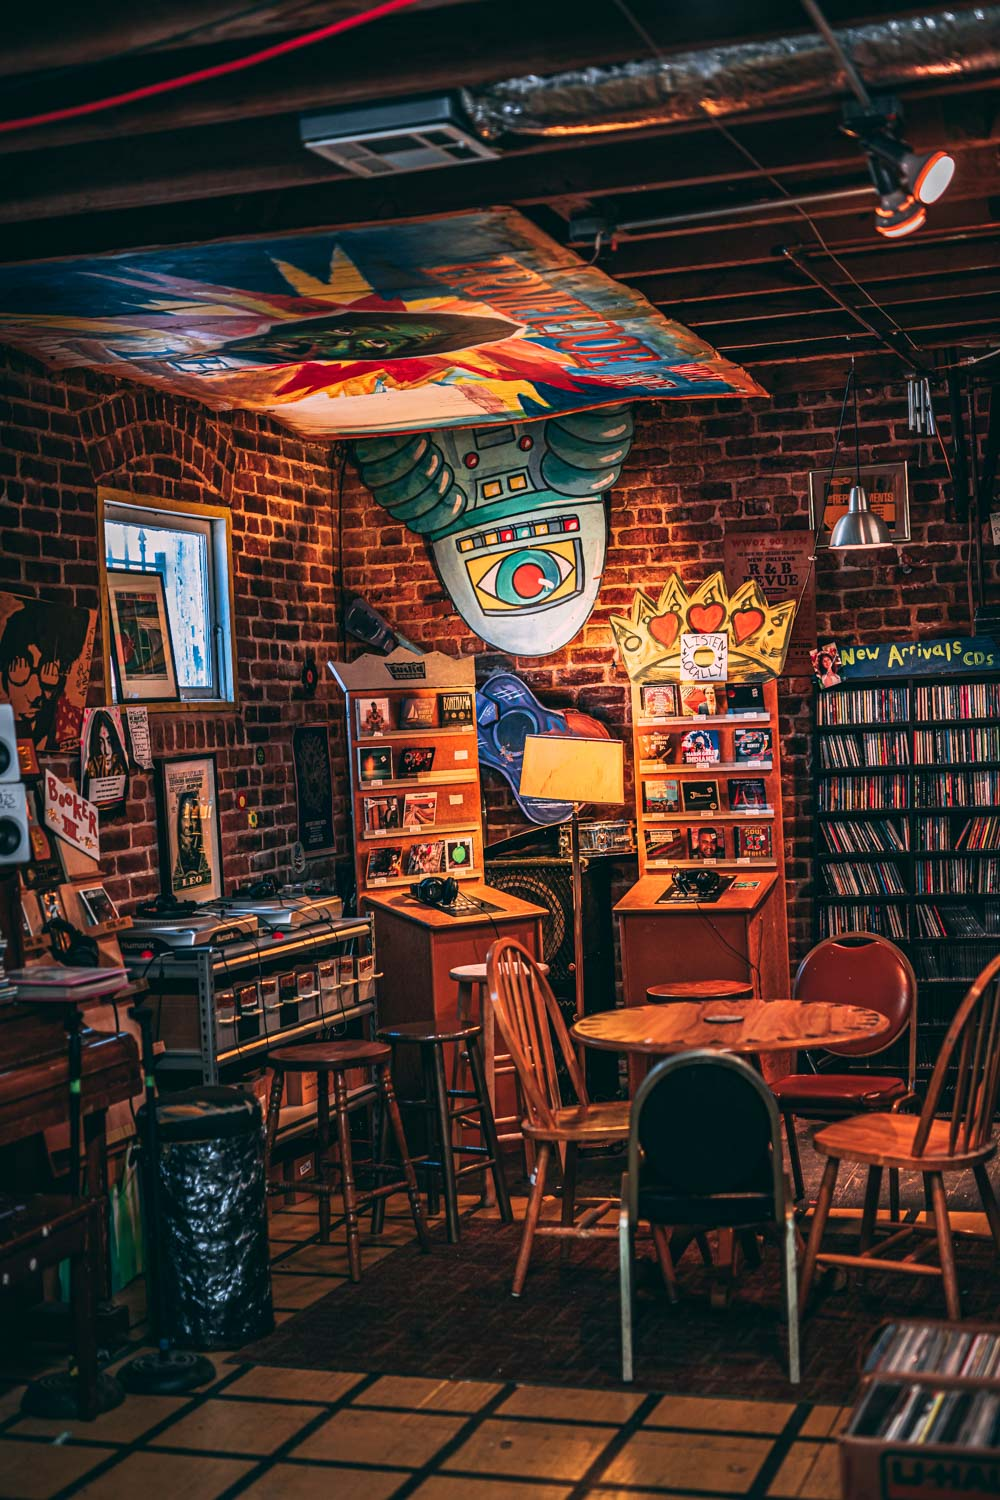 Euclid Records - New Orleans Itinerary